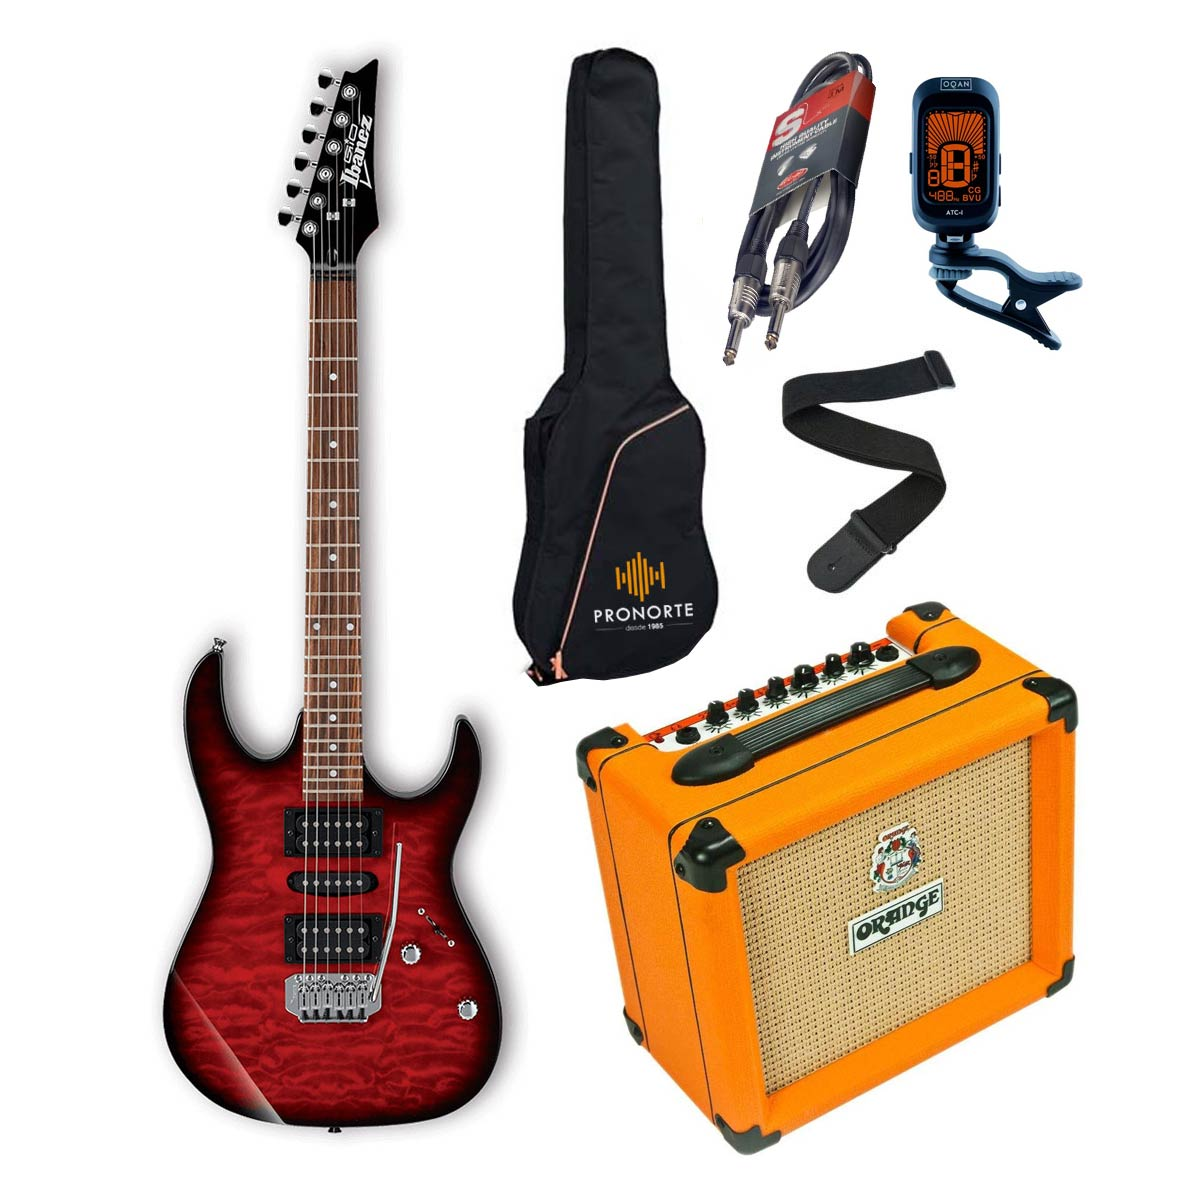 Pro Pack Ibanez GRX70QA-TRB + Orange Crush 12 - Iniciación guitarra